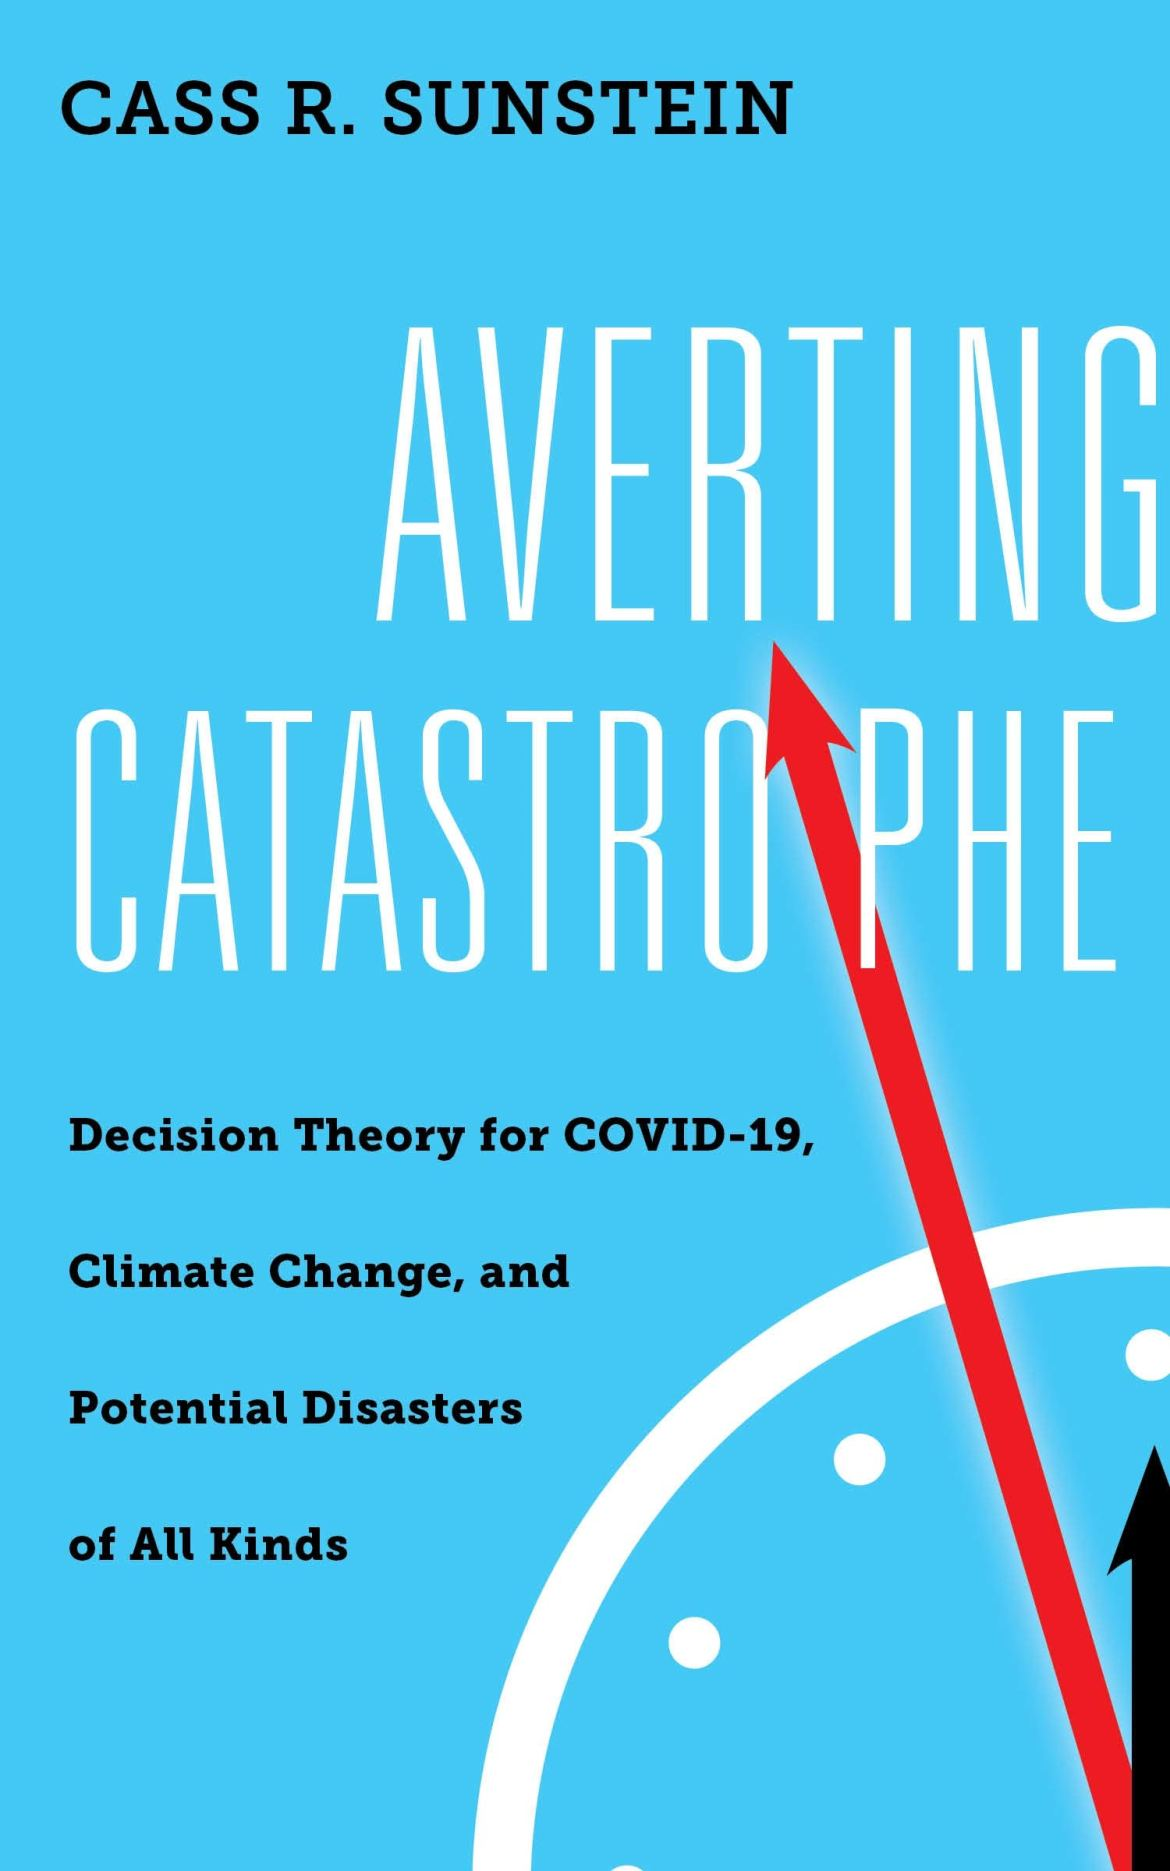 Averting Catastrophe: Decision Theory for COVID-19, Climate Change, and Potential  Disasters of All Kinds: Sunstein, Cass R.: 9781479808489: Amazon.com: Books